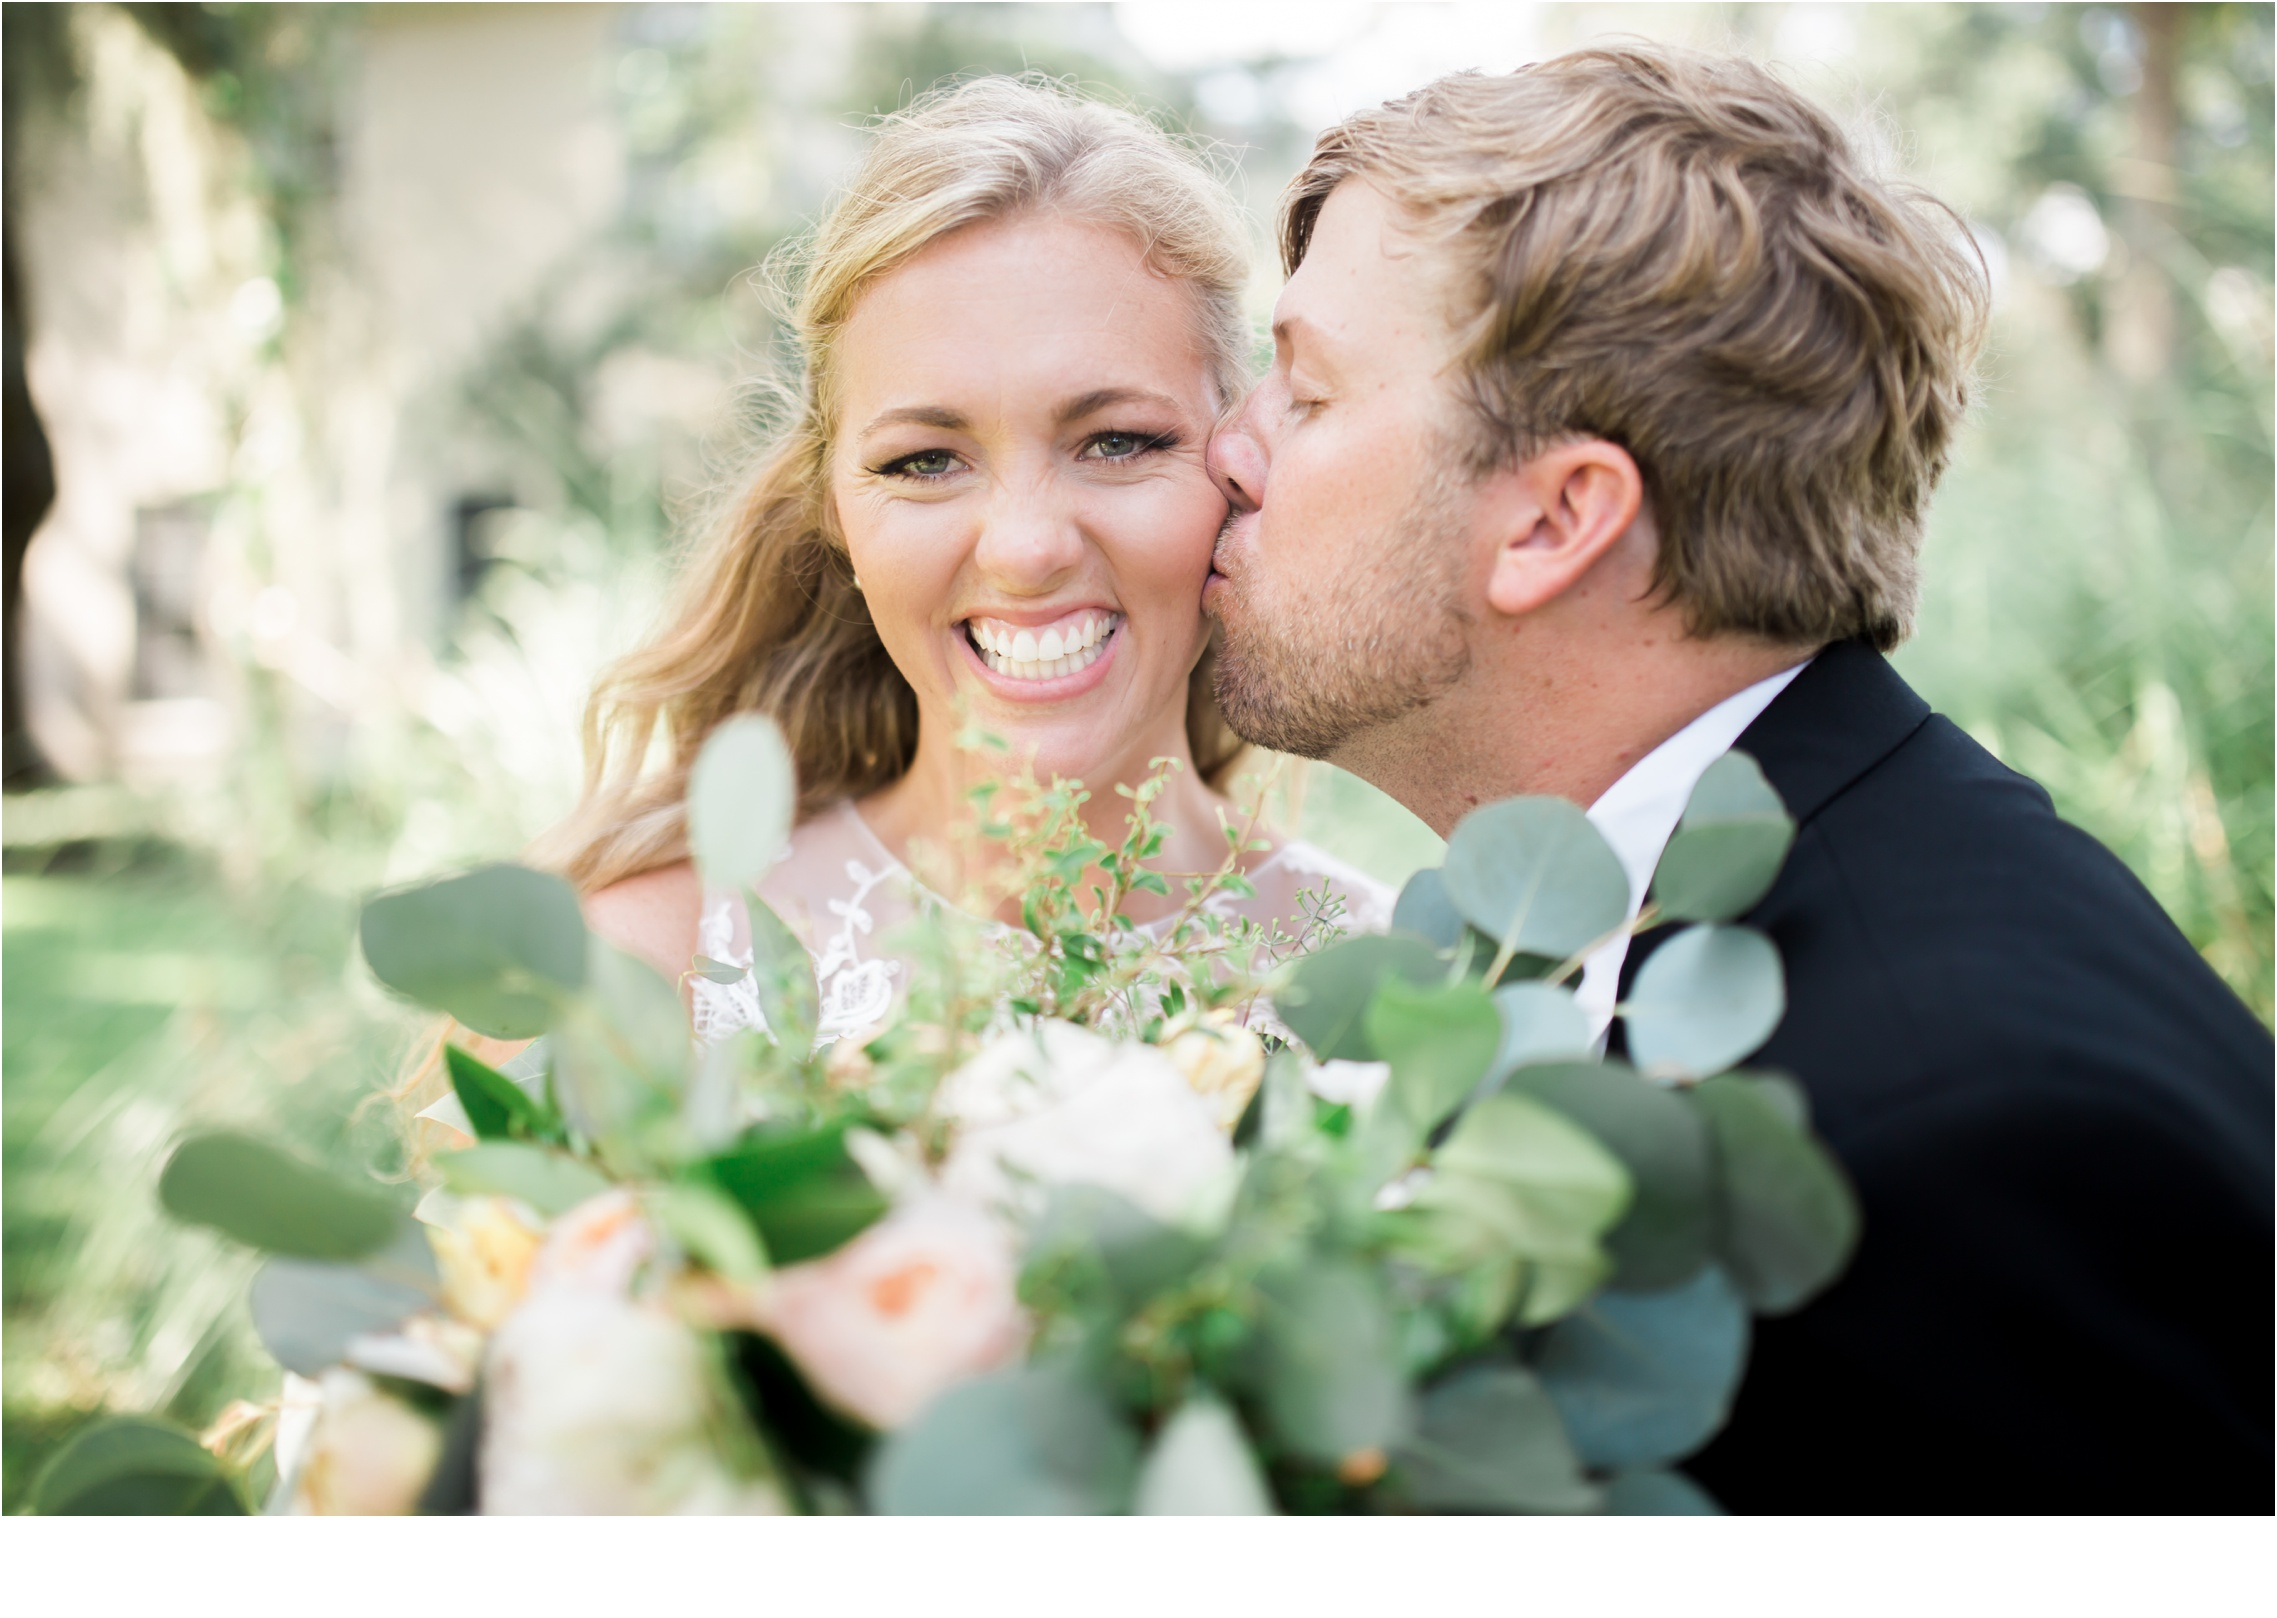 Rainey_Gregg_Photography_St._Simons_Island_Georgia_California_Wedding_Portrait_Photography_0056.jpg